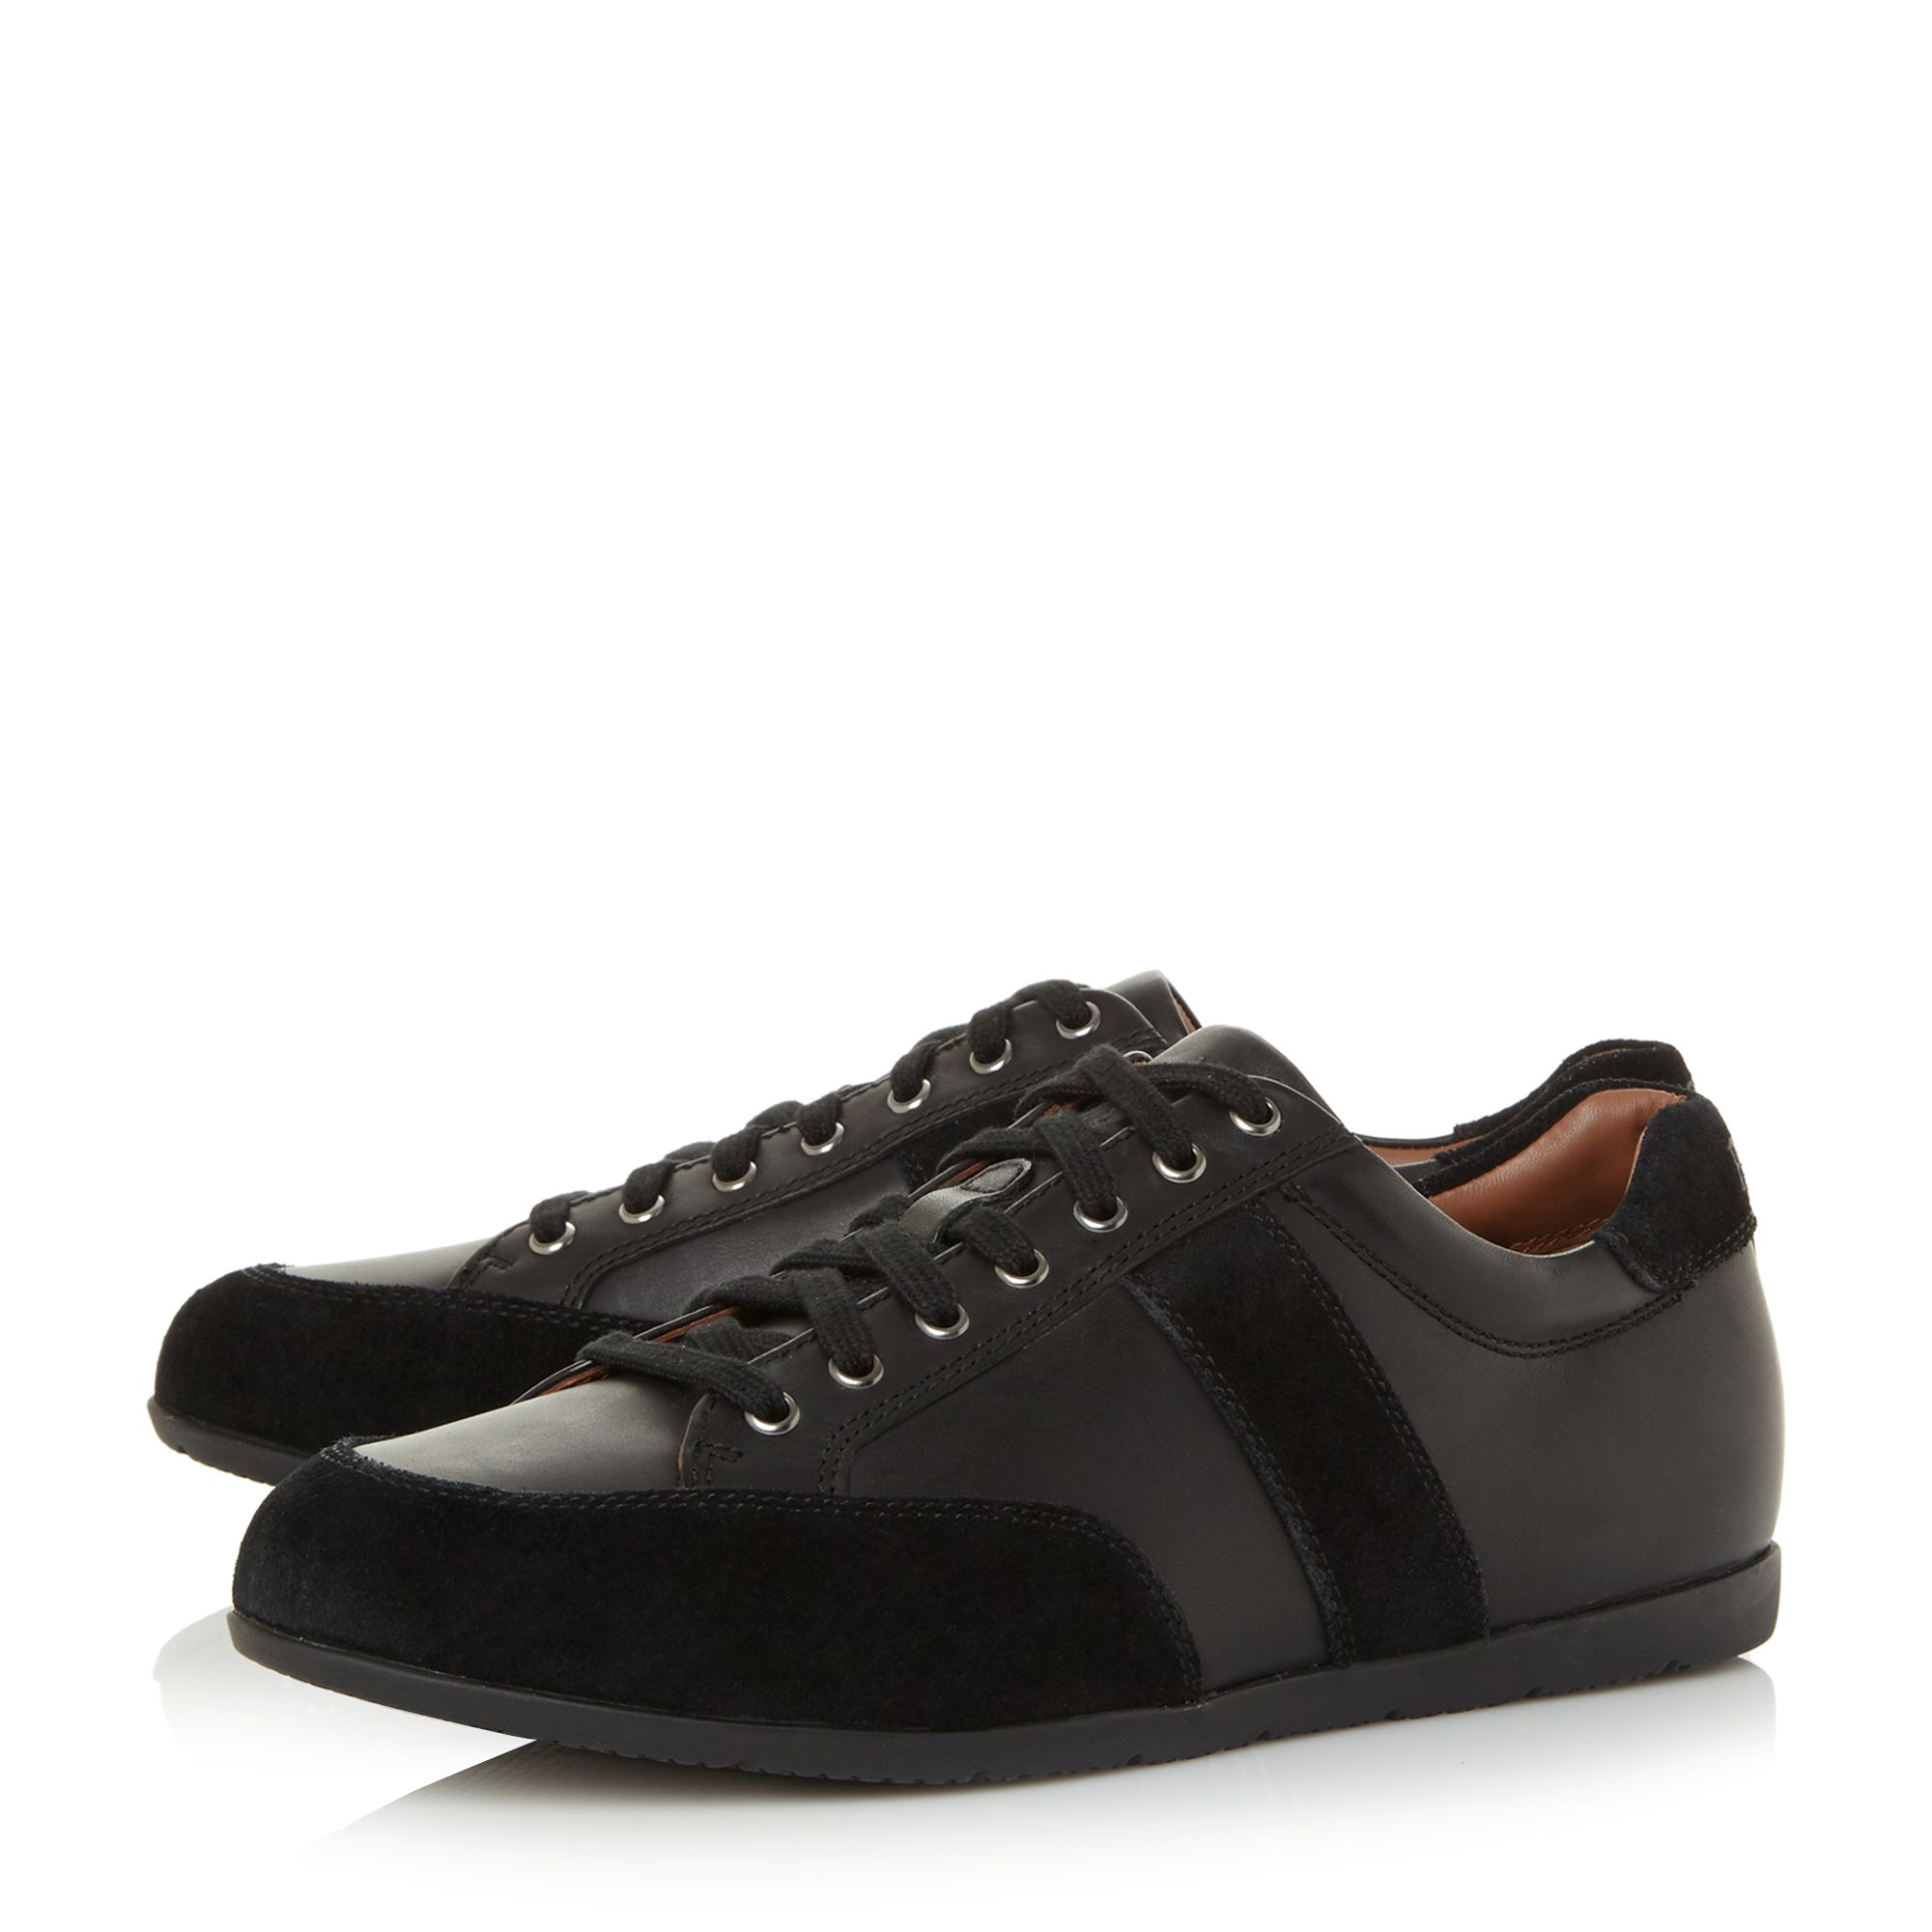 ... Polo Ralph Lauren Price Slim City Sneakers